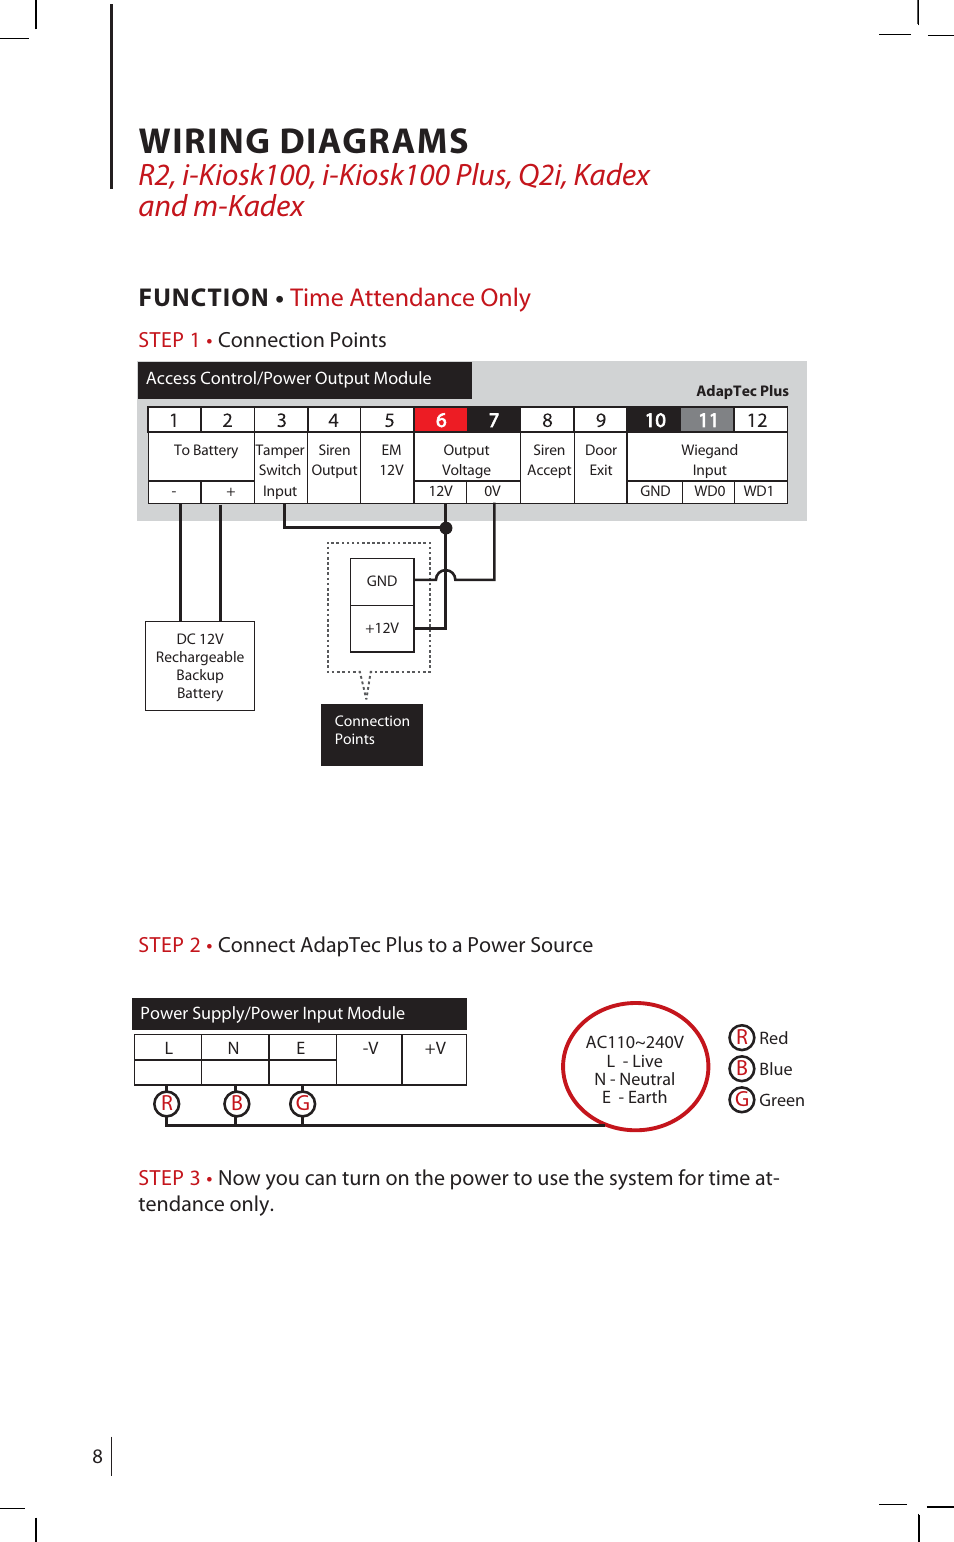 Wiring Diagrams  Function  U2022 Time Attendance Only